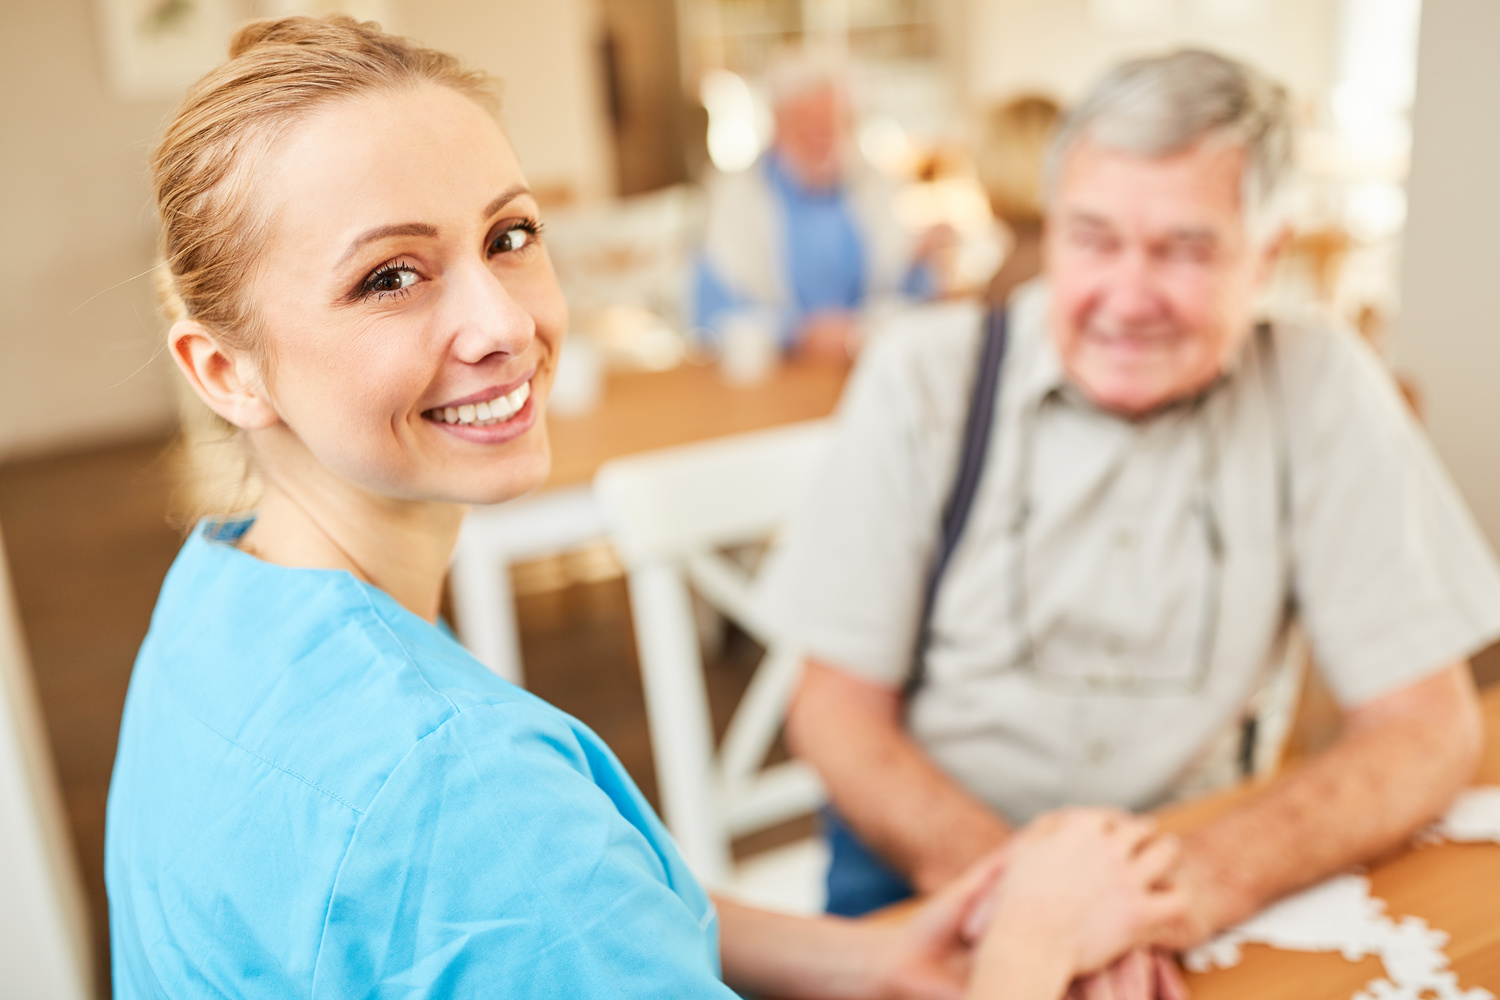 Senior Carer Chicago – Providing Specialized Home Care Assistance for the Elderly